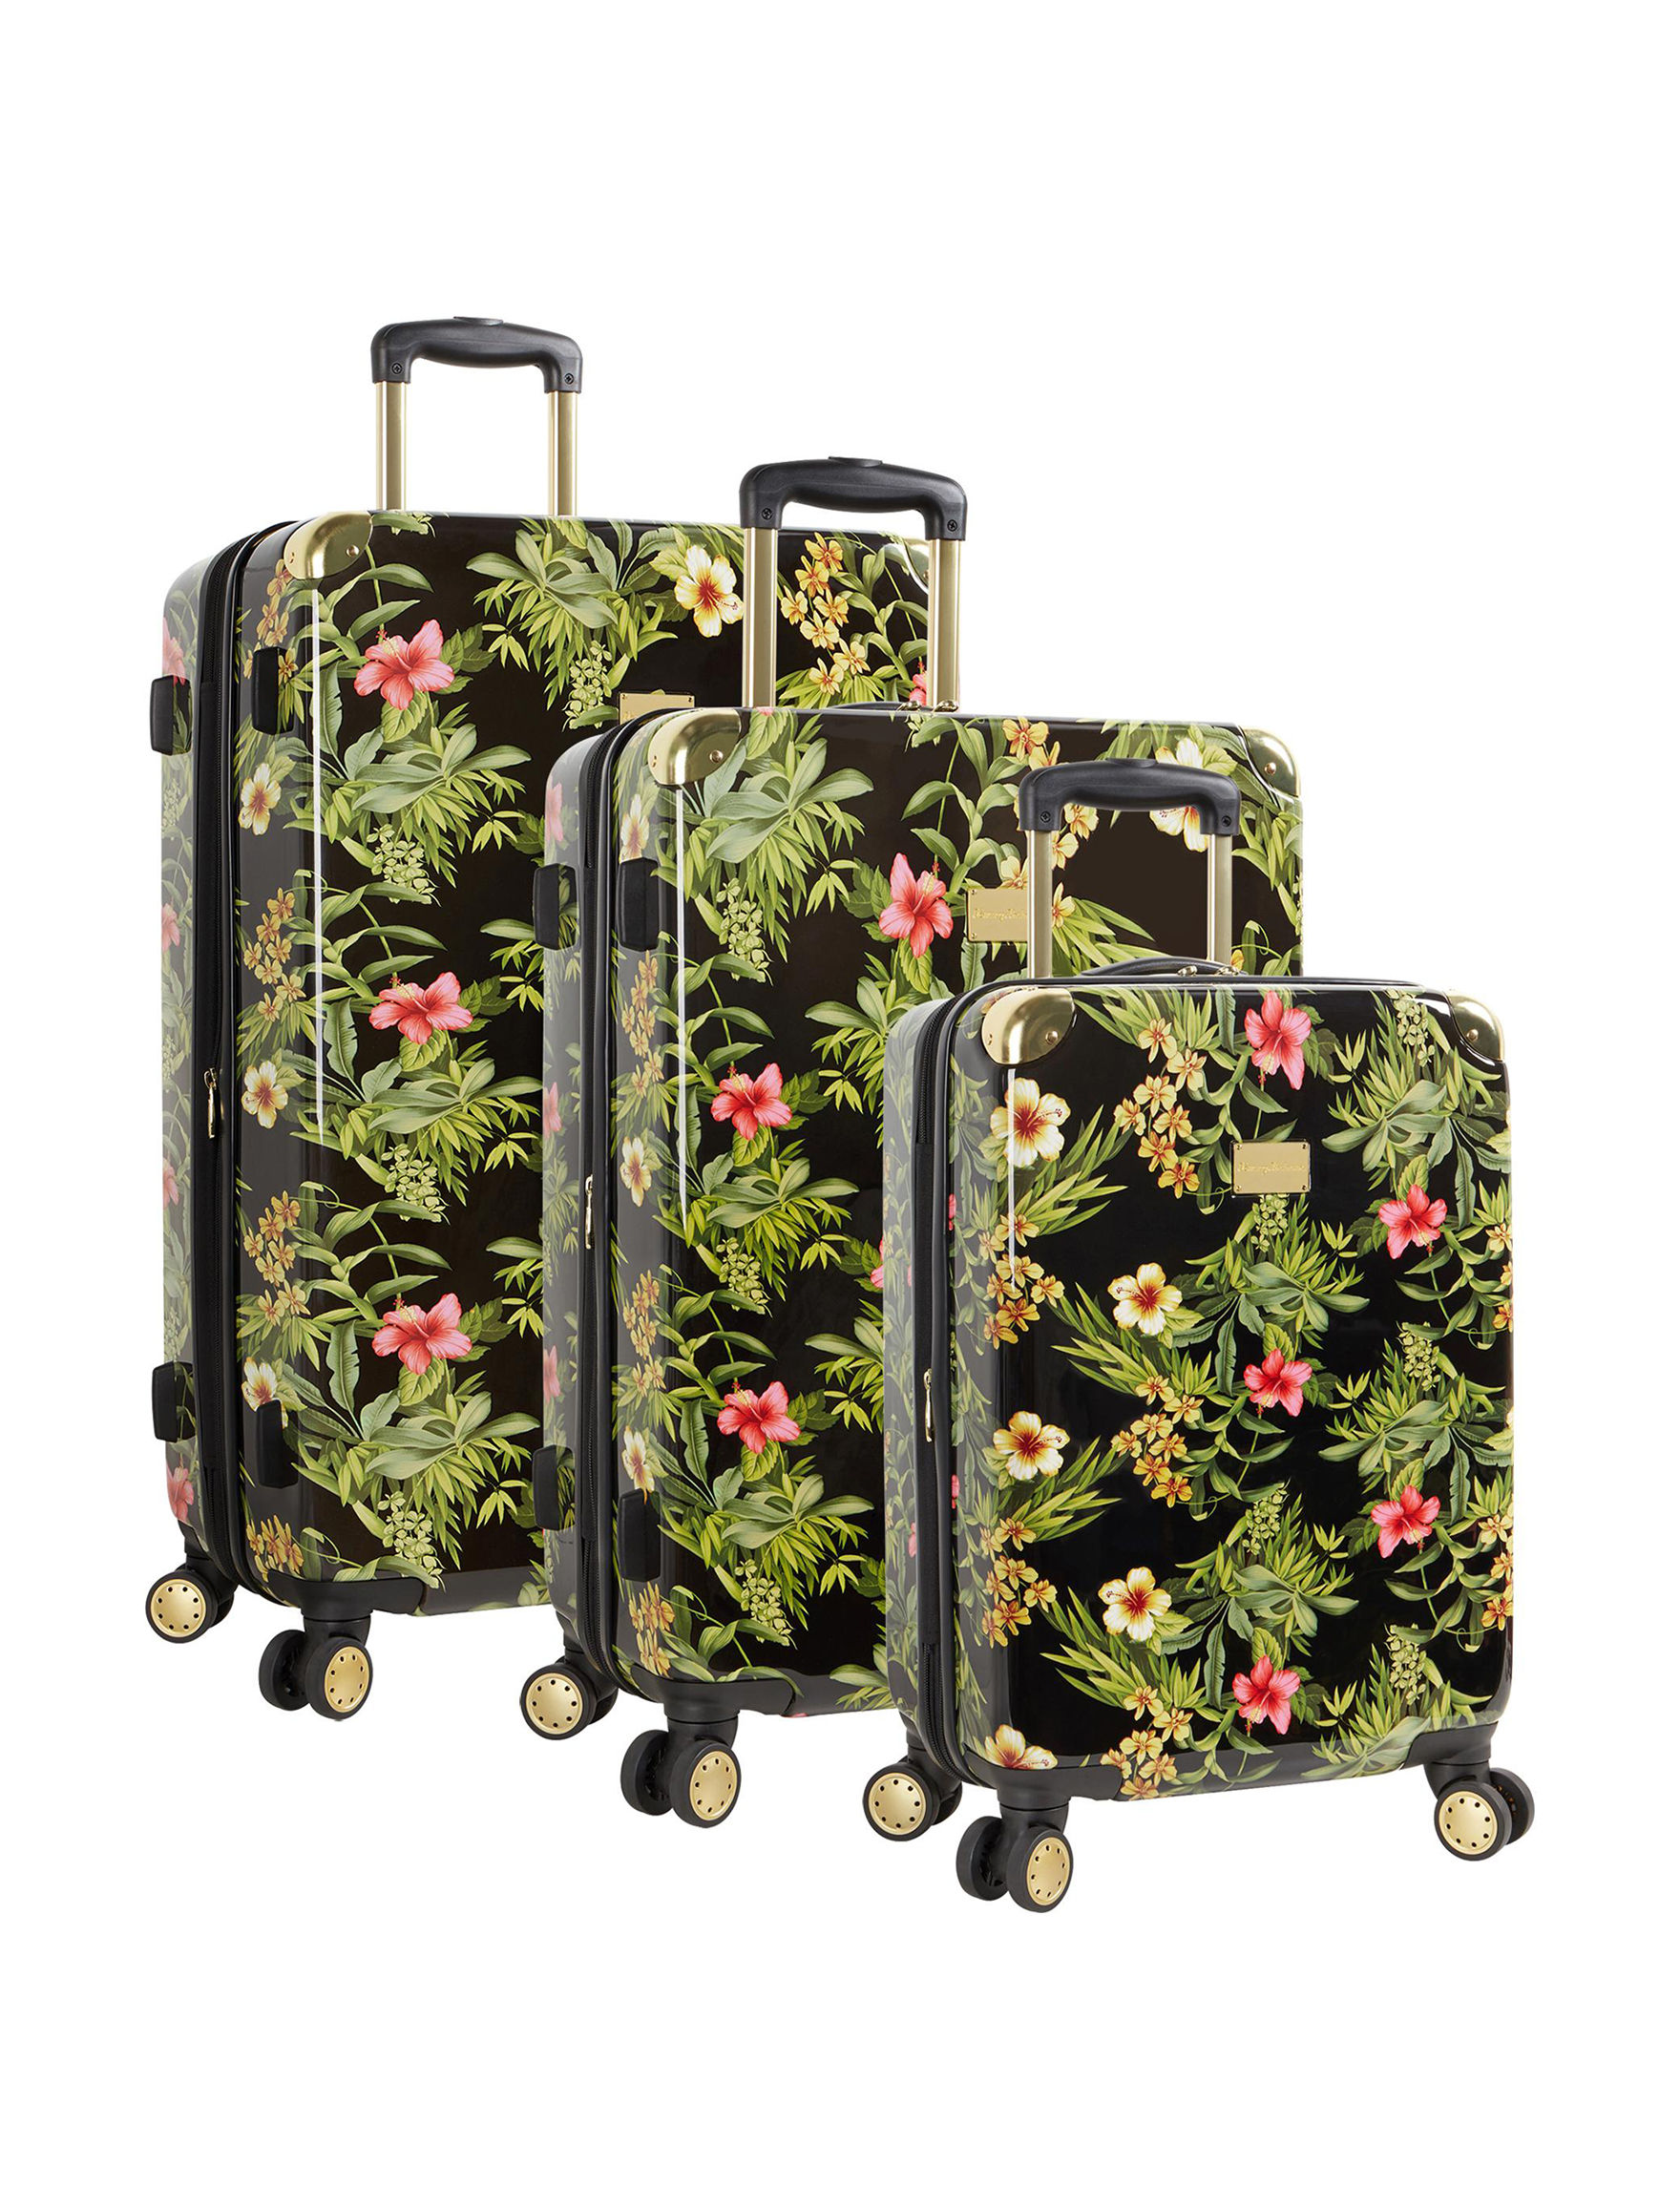 Tommy Bahama Black Floral Luggage Sets Upright Spinners